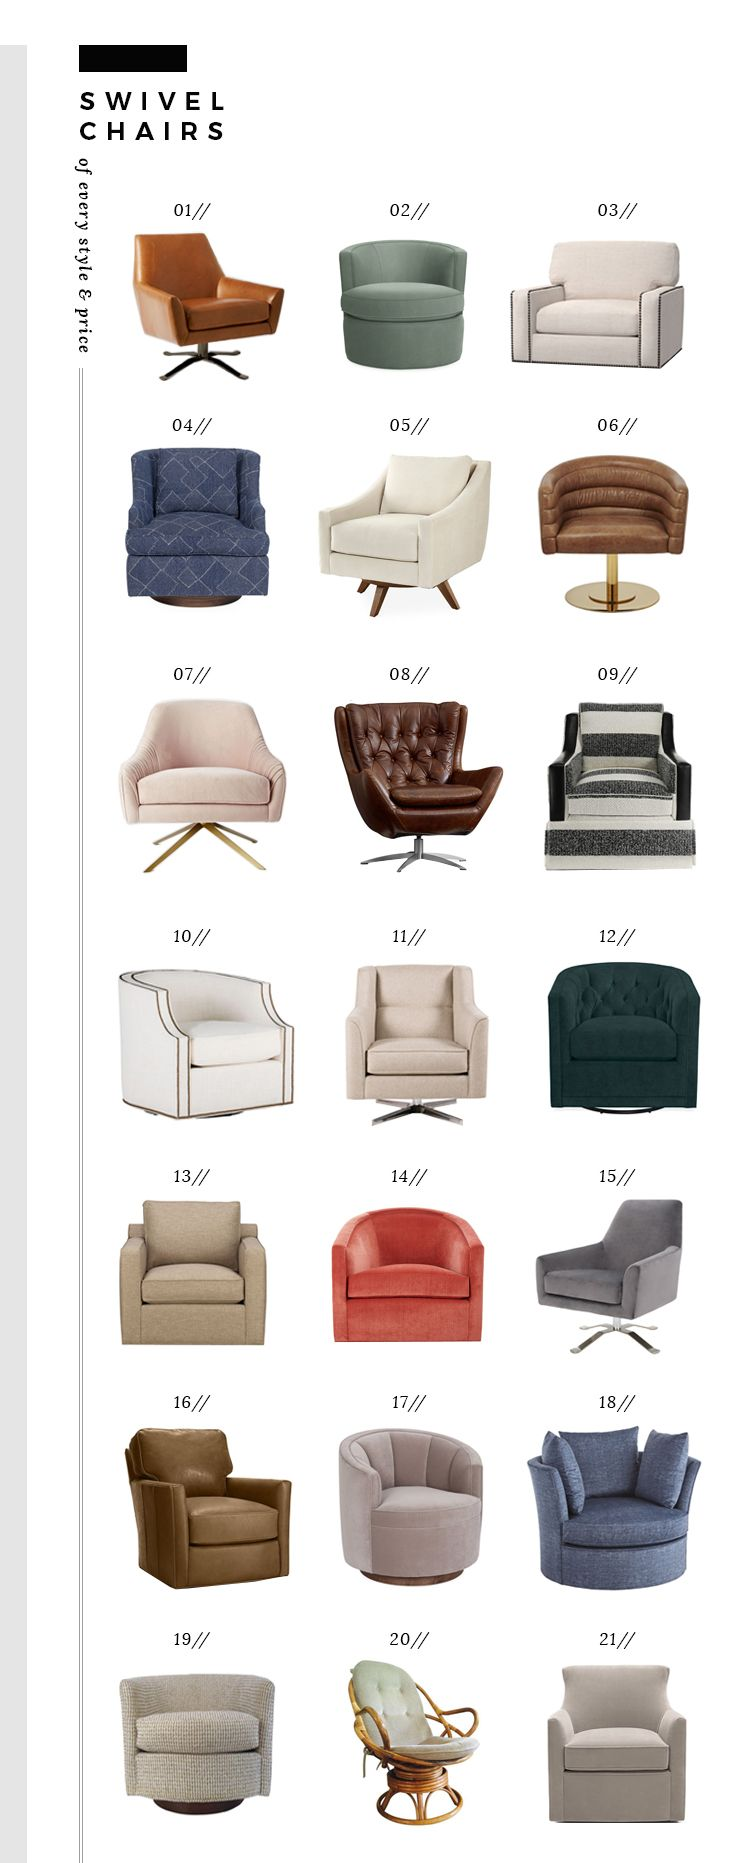 Comfortable Swivel Chairs Of Every Style And Price Part 78